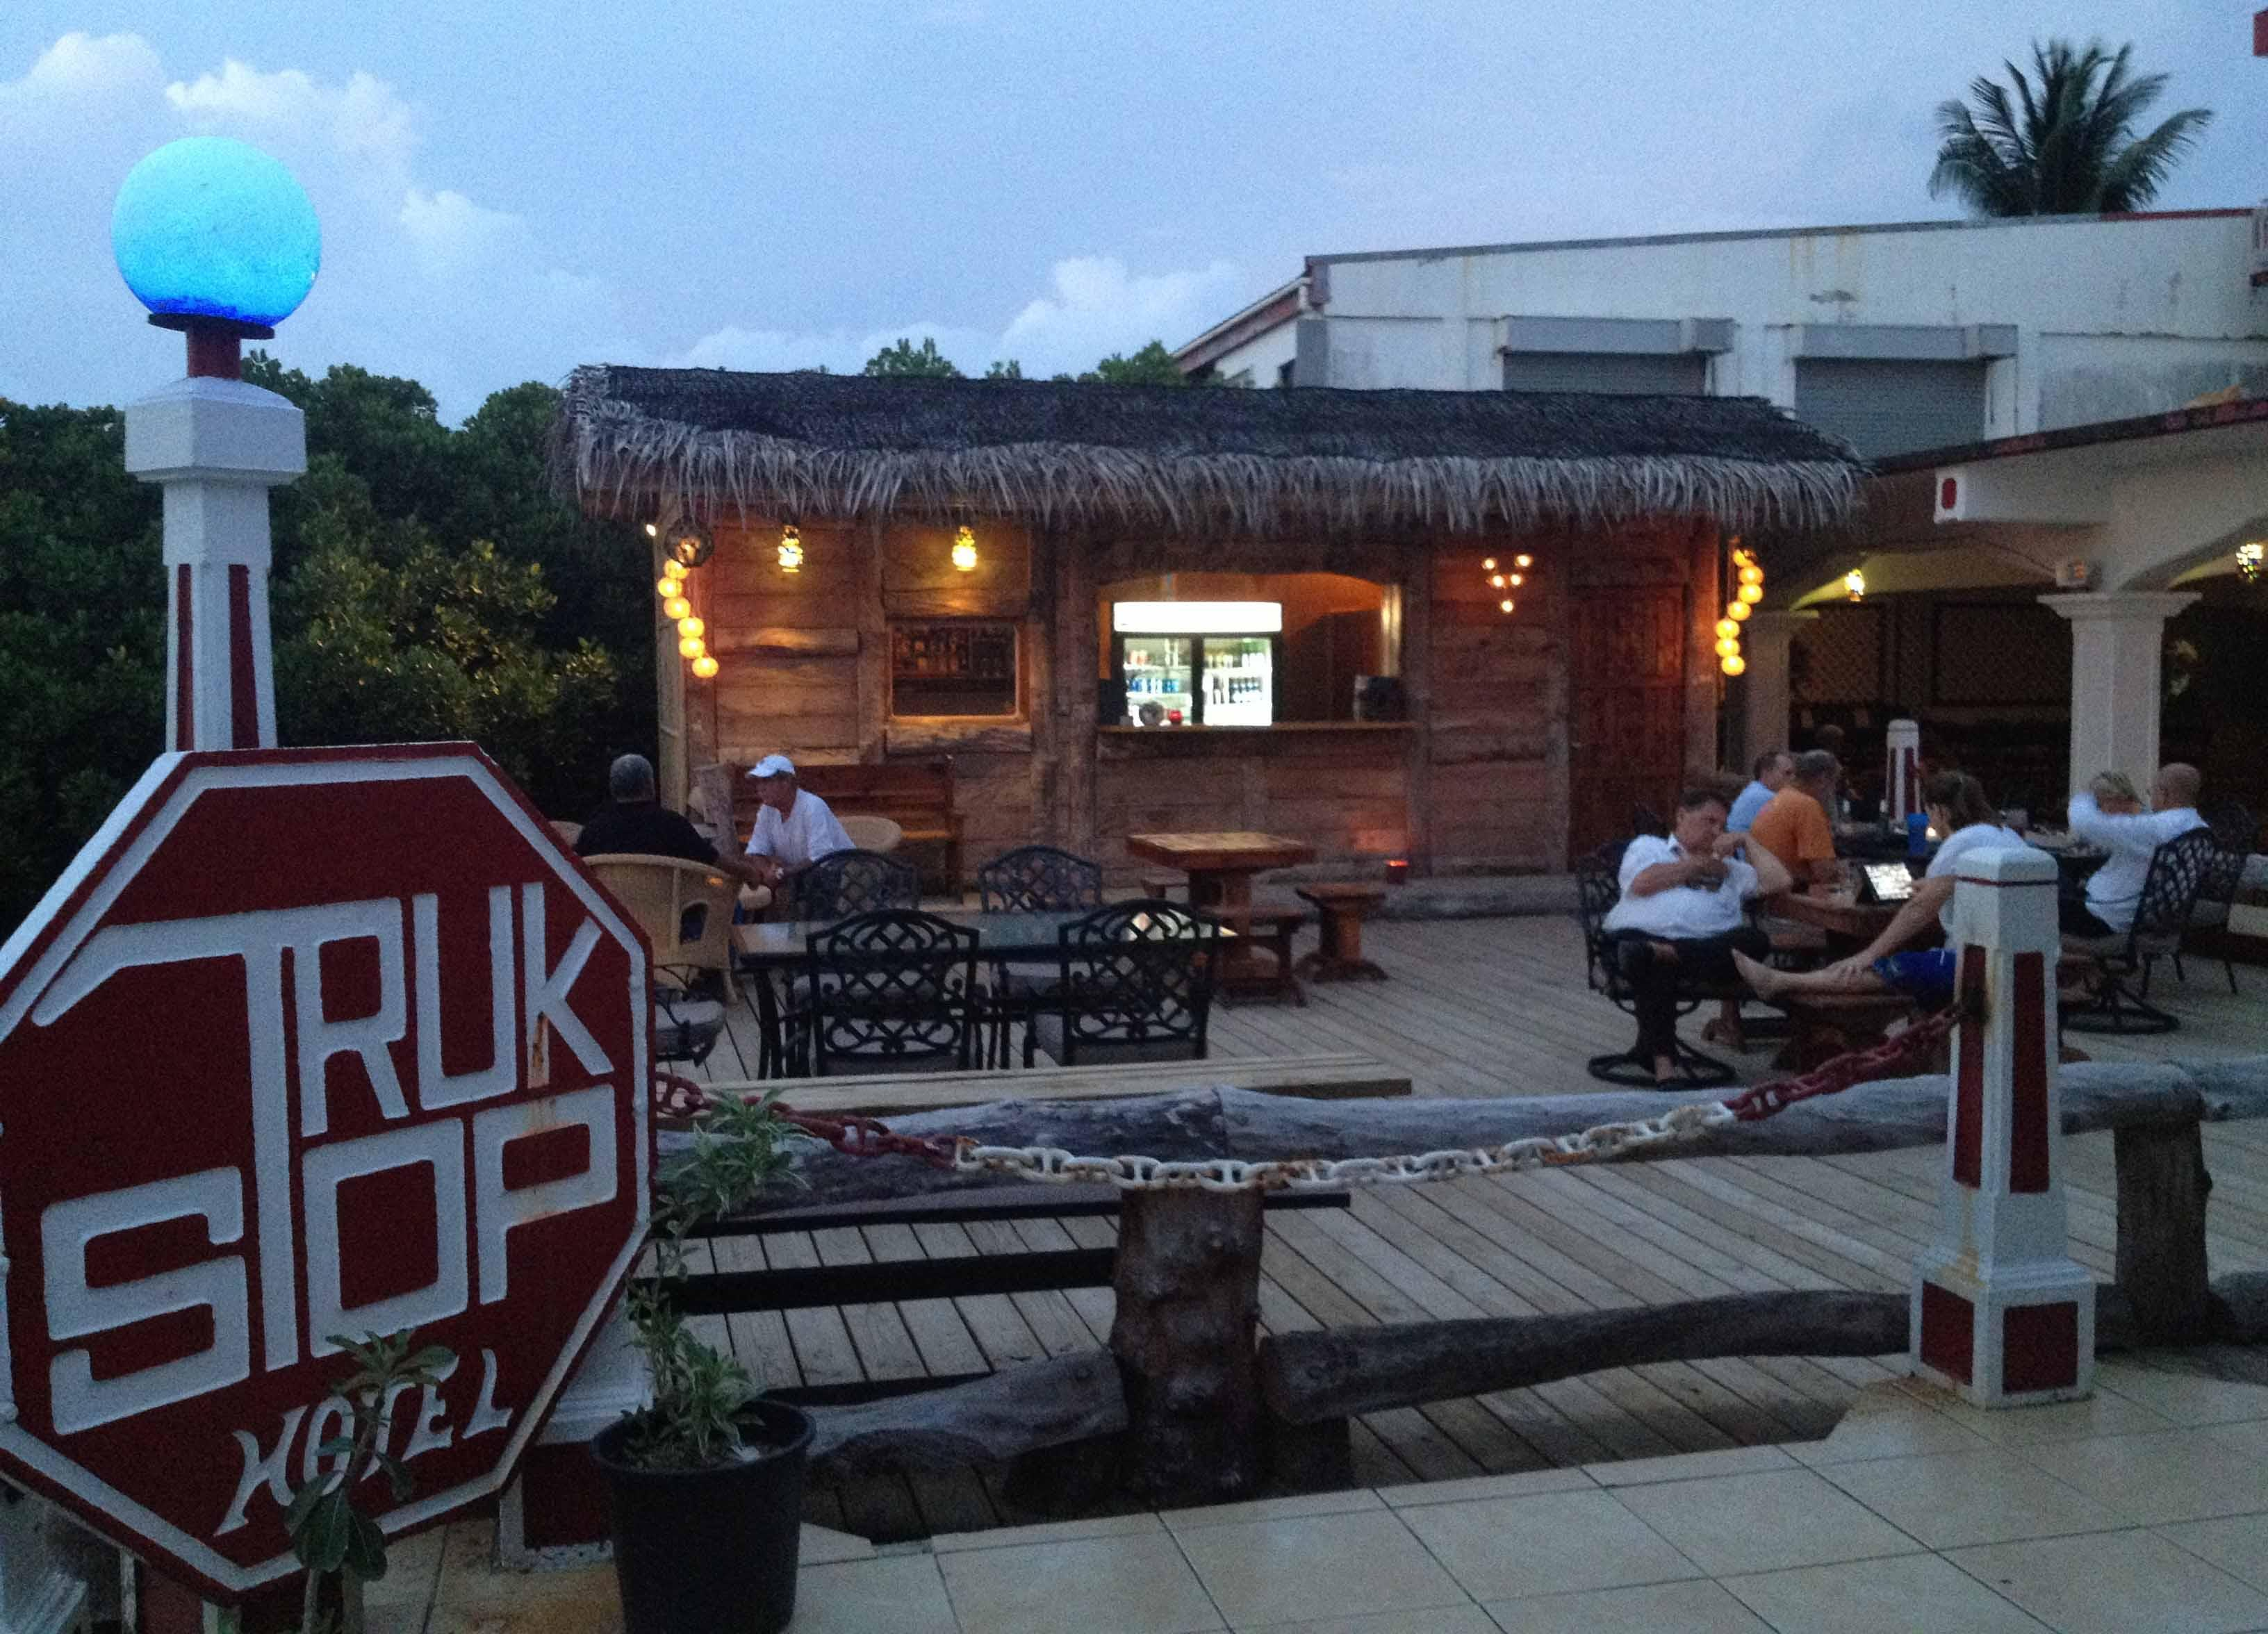 Truk Stop Hotel and Restaurant